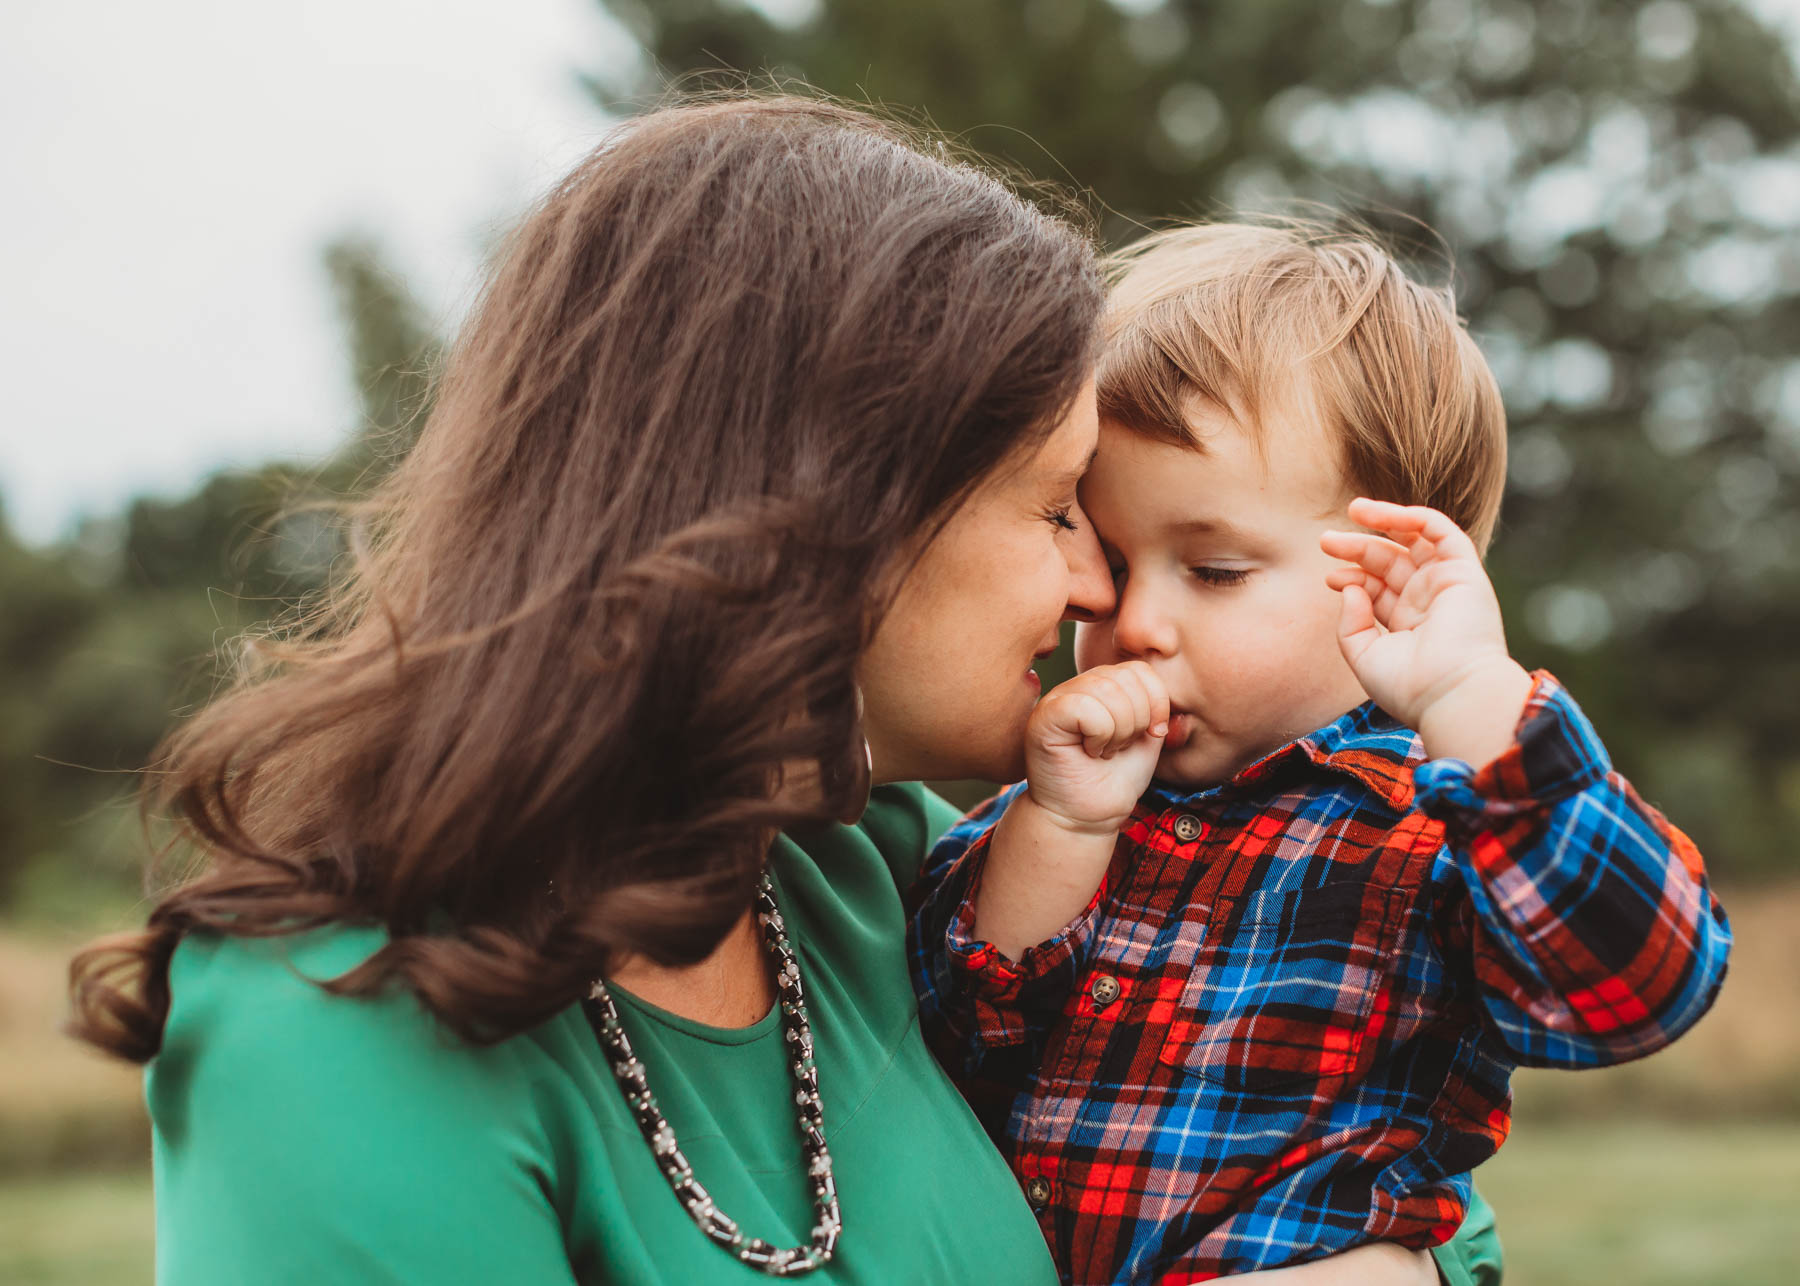 There are only so many weekends for fall family photos! The best way to snag a date with a great Boston family photographer is to PLAN AHEAD. Get in touch as soon as you have a date in mind and make sure it's solidly set in your calendar.